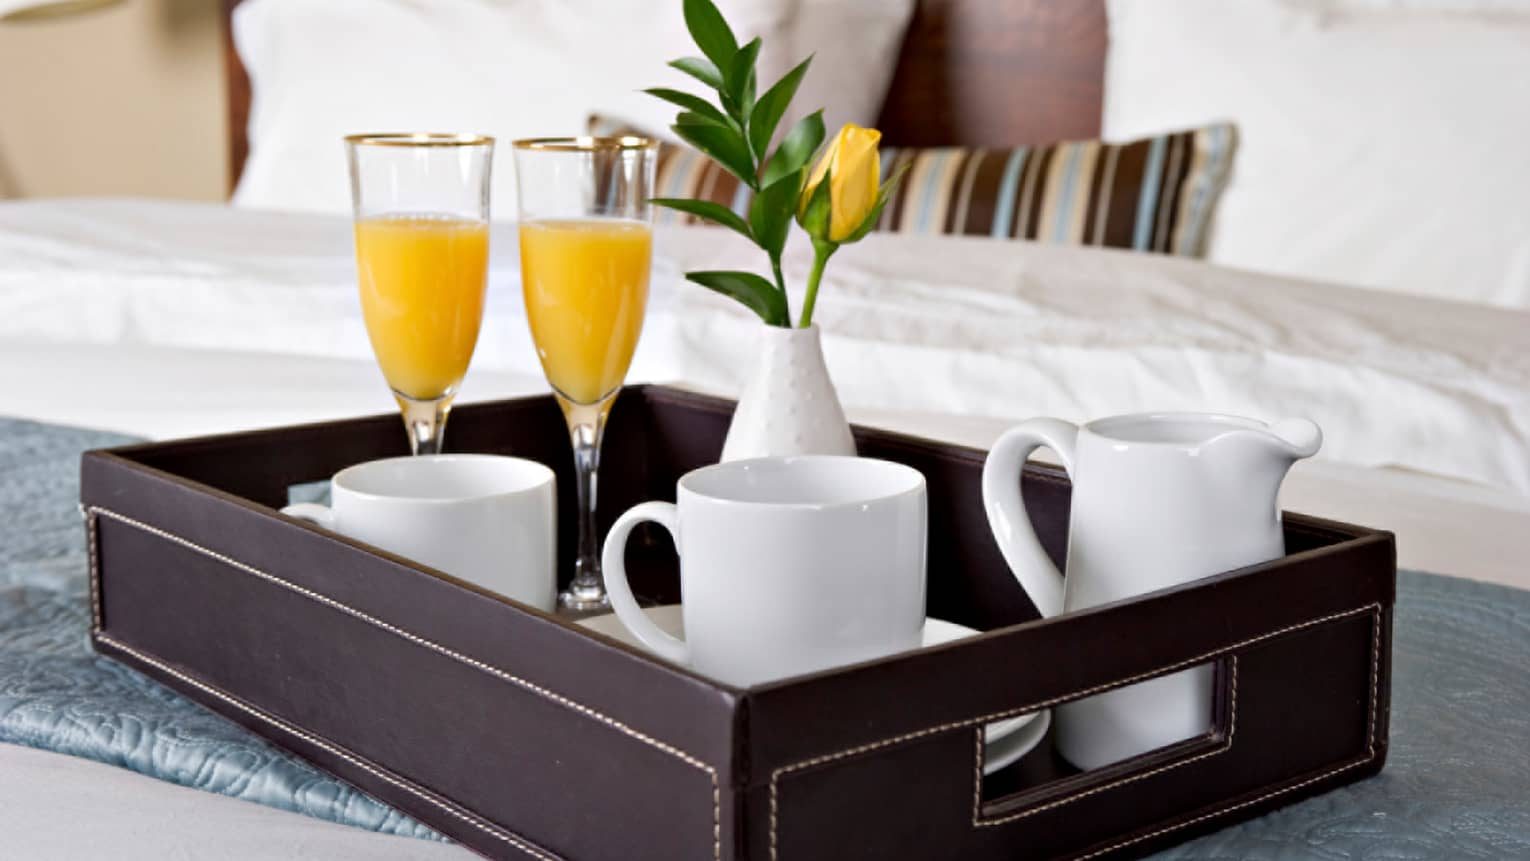 Close-up of in-room dining tray with two champagne and orange juice glasses, white coffee mugs, yellow flower